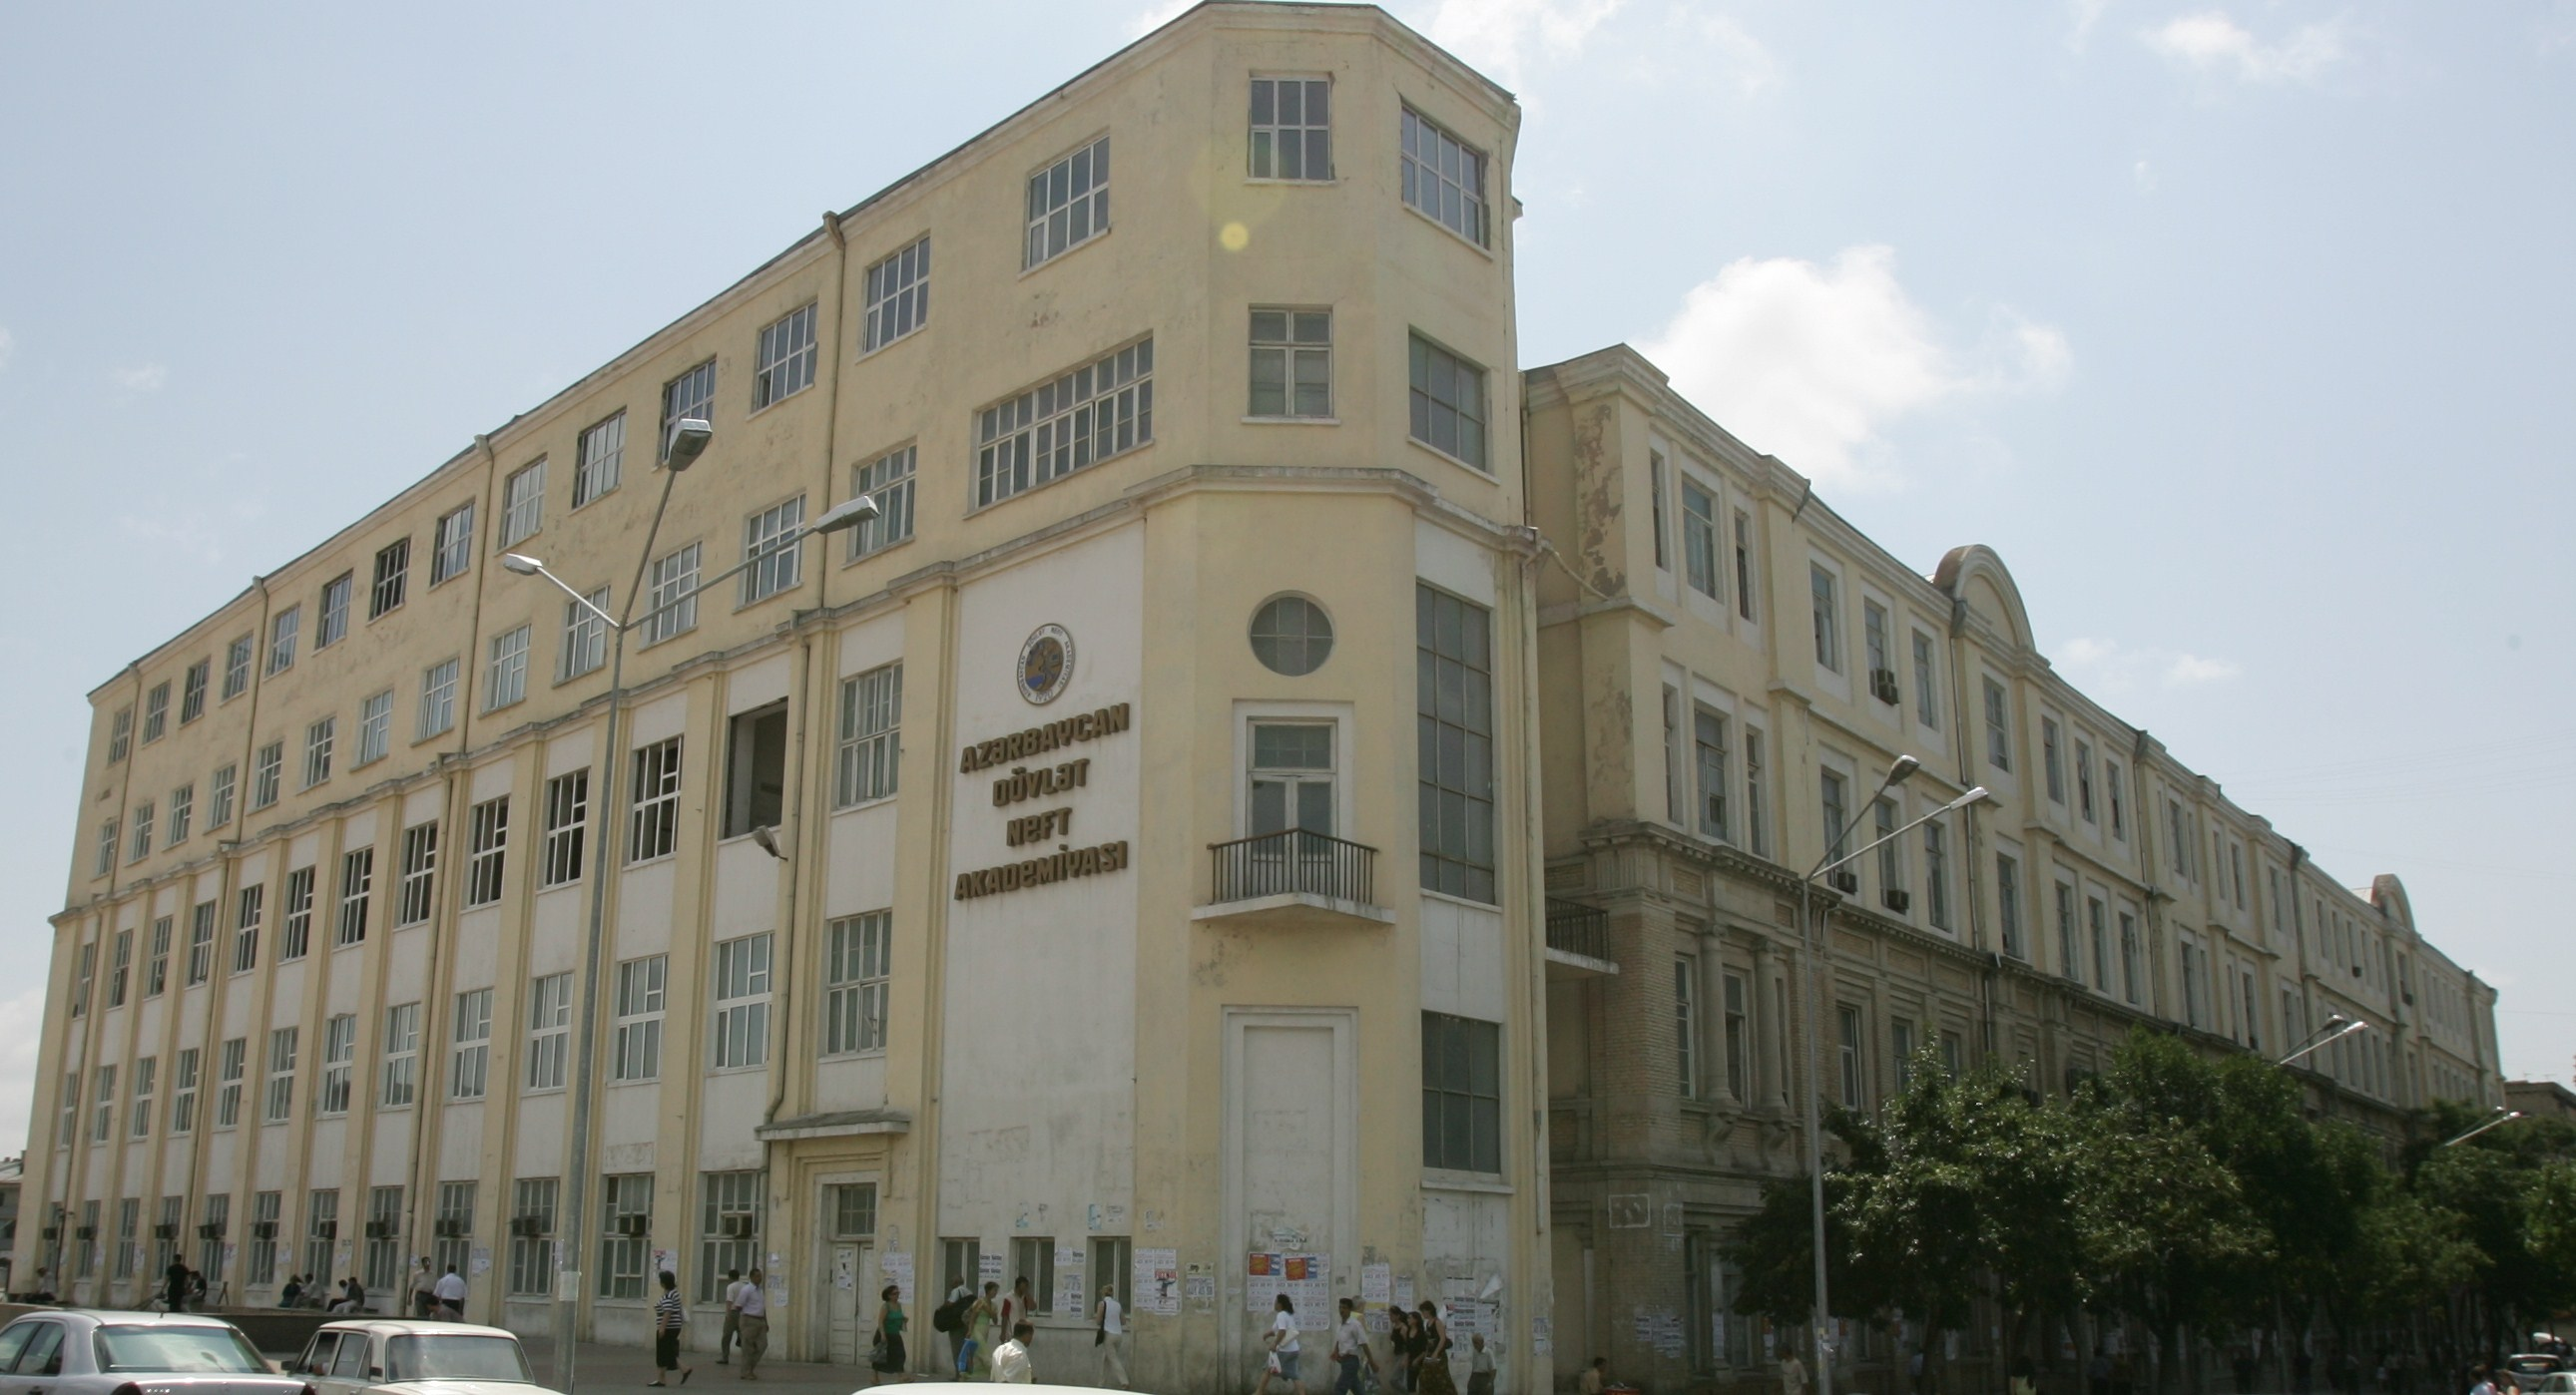 image of Azerbaijan State Oil and Industrial University